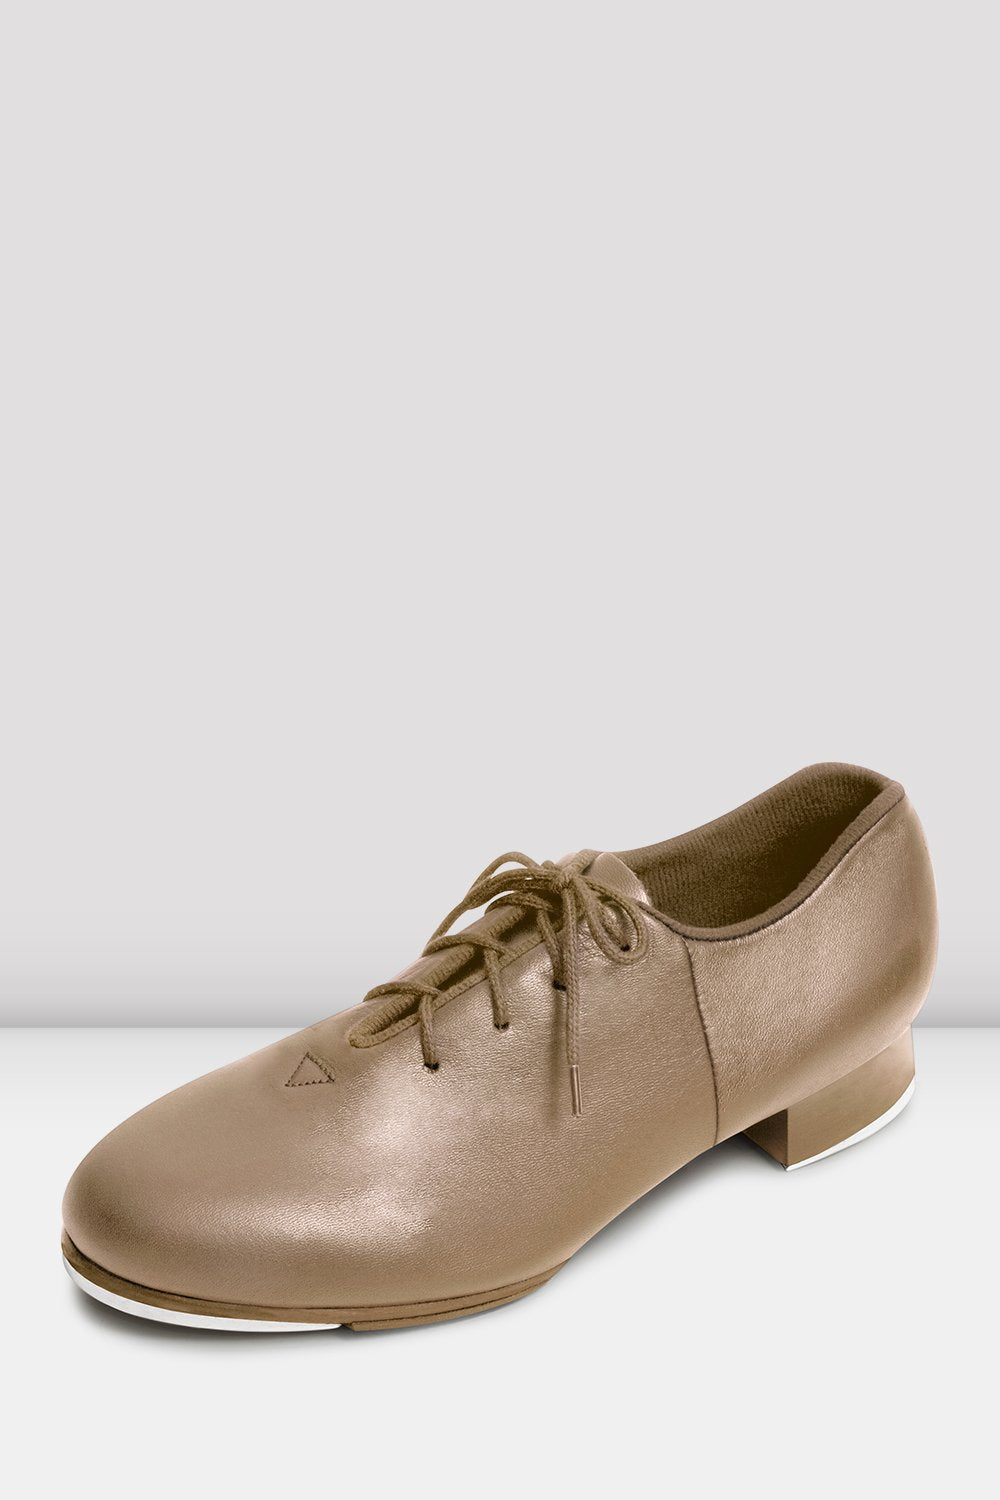 BLOCH - SO388L - Tap-Flex Leather Tap Shoes - Caramel